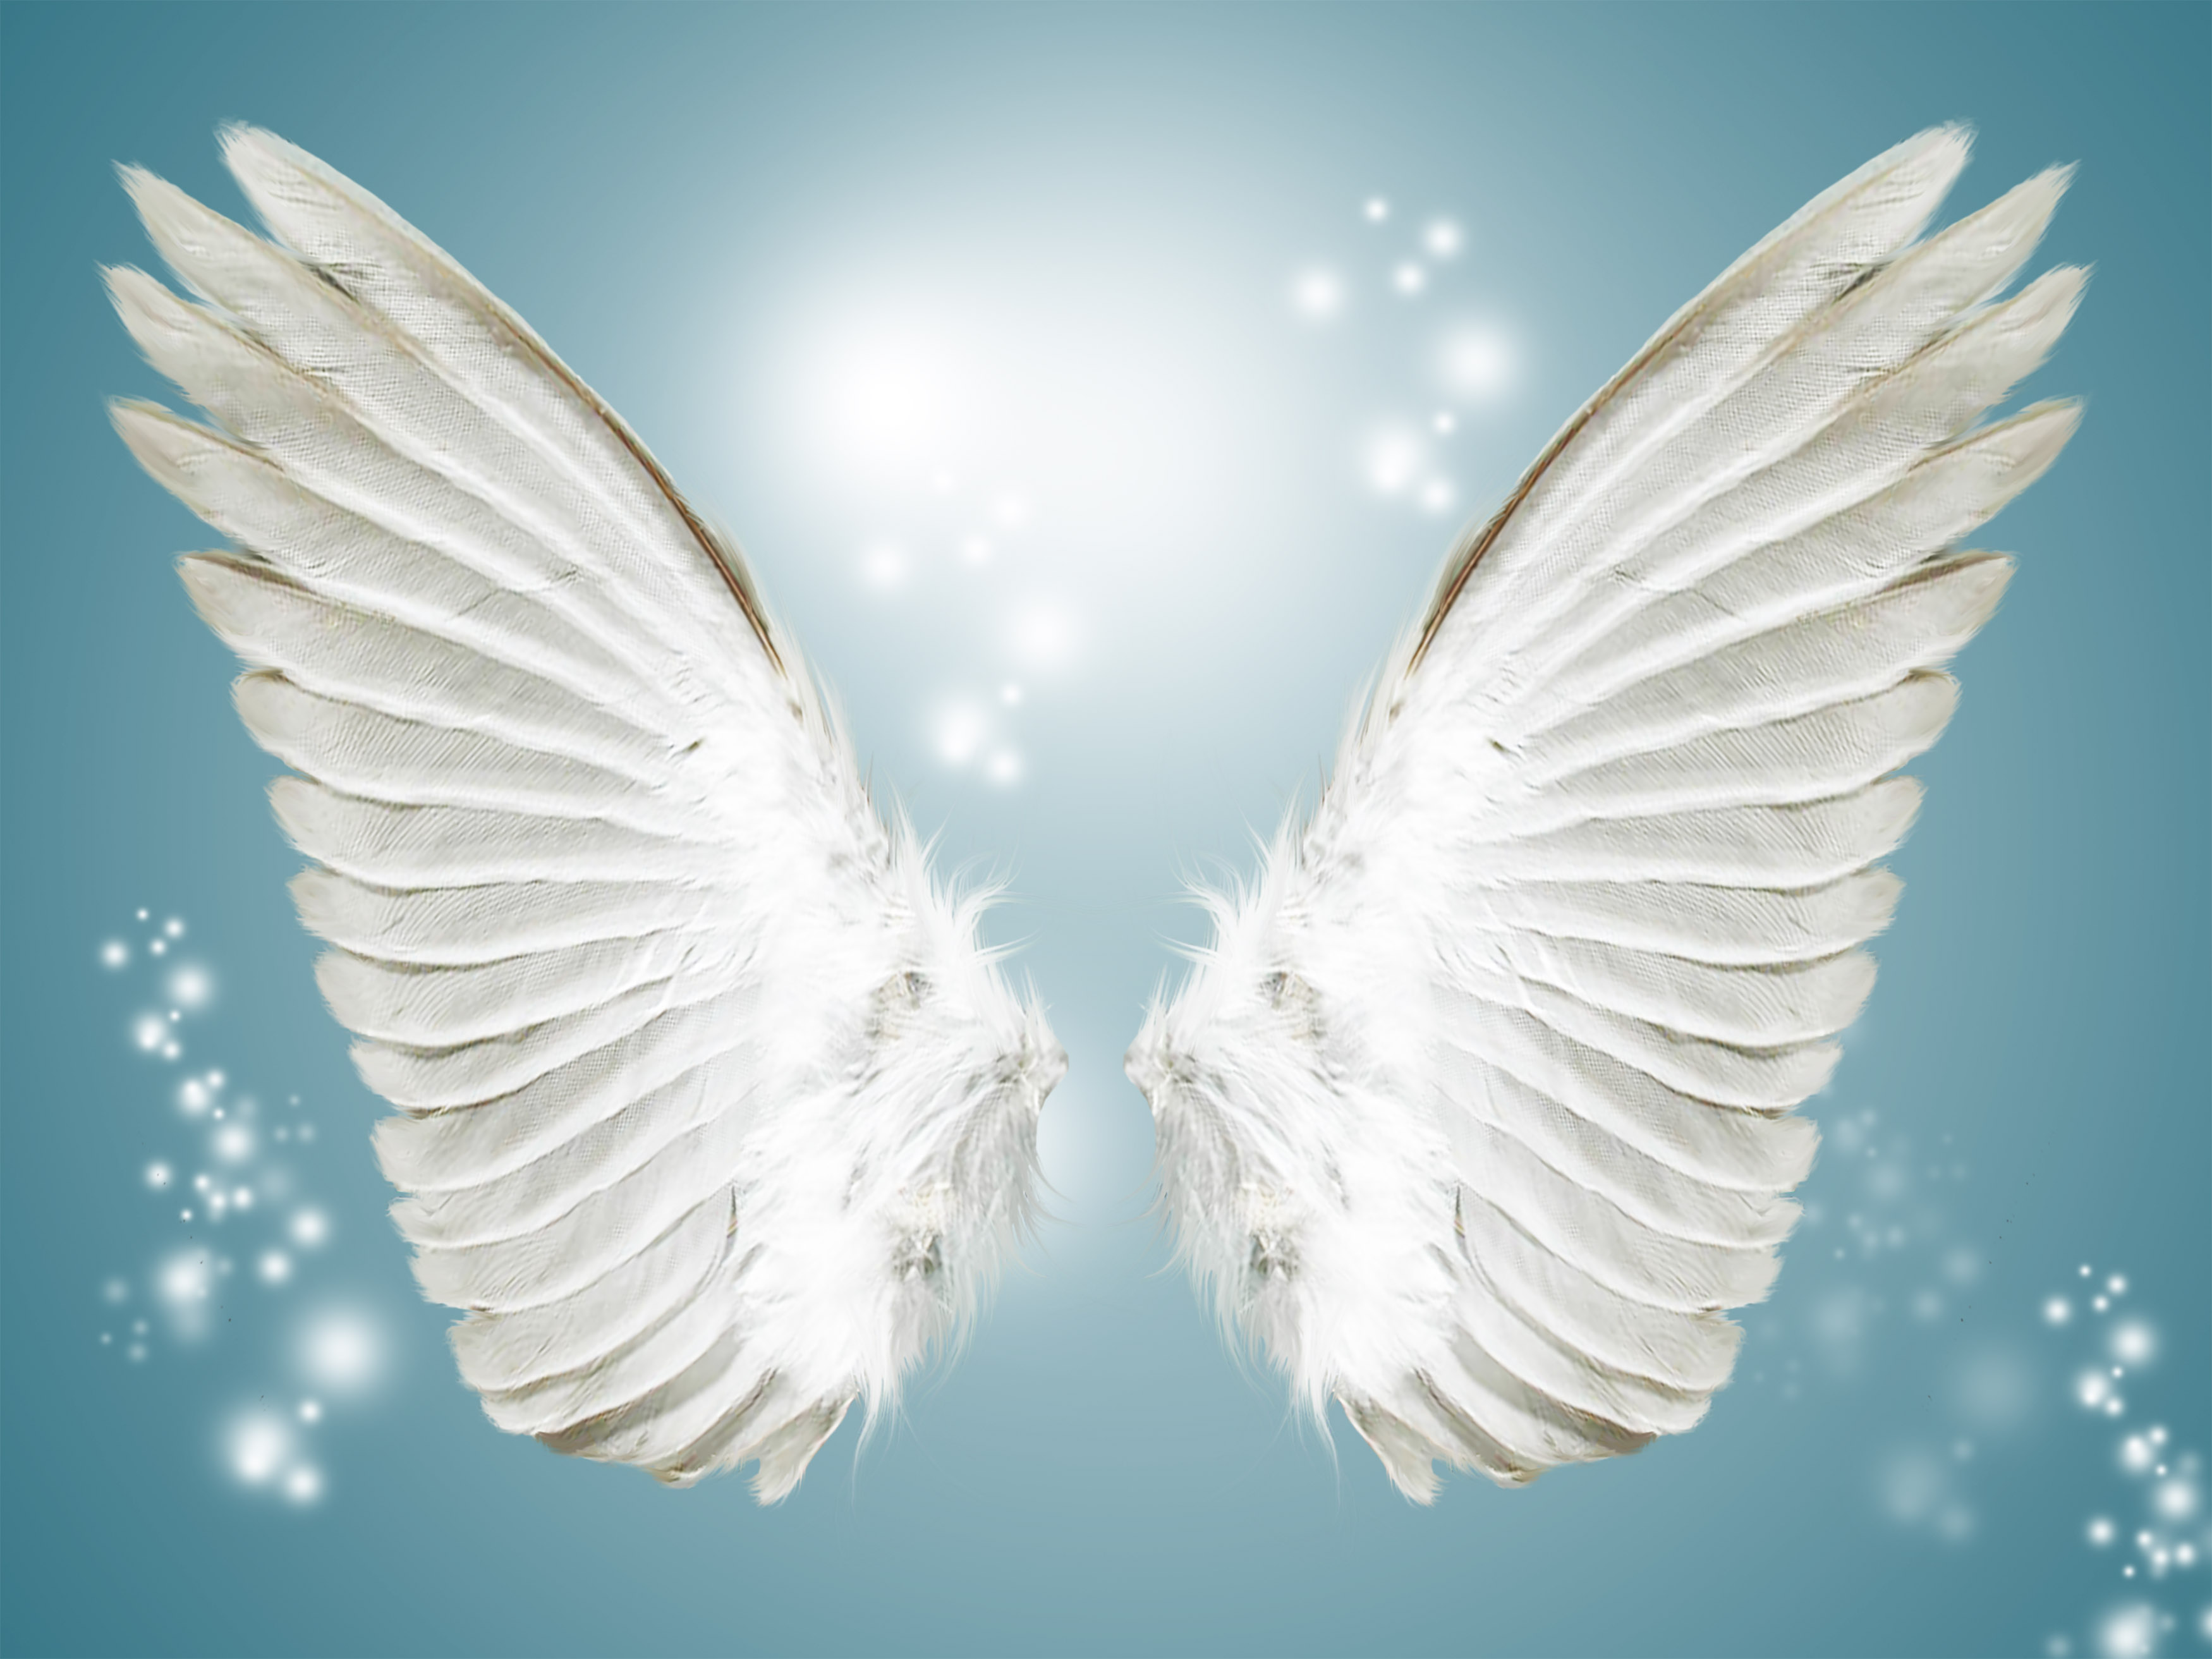 angel white wing background  blue  angel  wings background image for free download